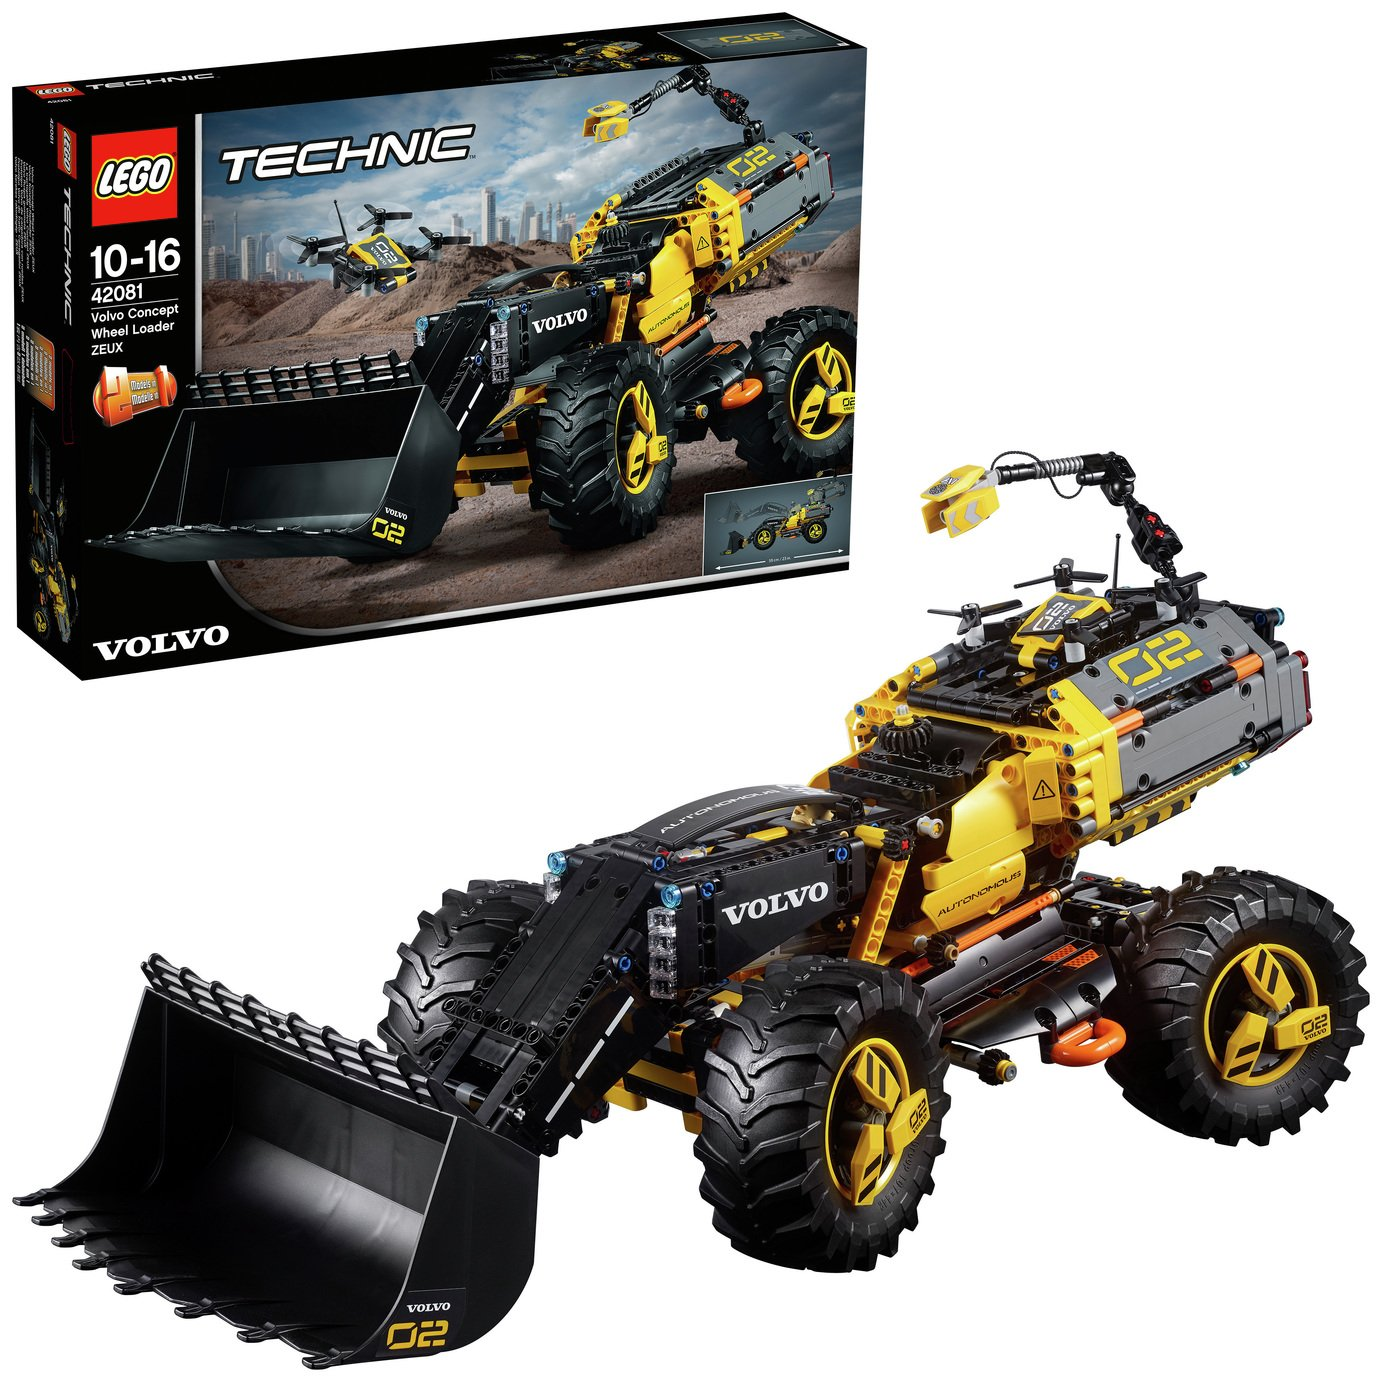 LEGO Technic Volvo Concept Wheel Loader Toy - 42081